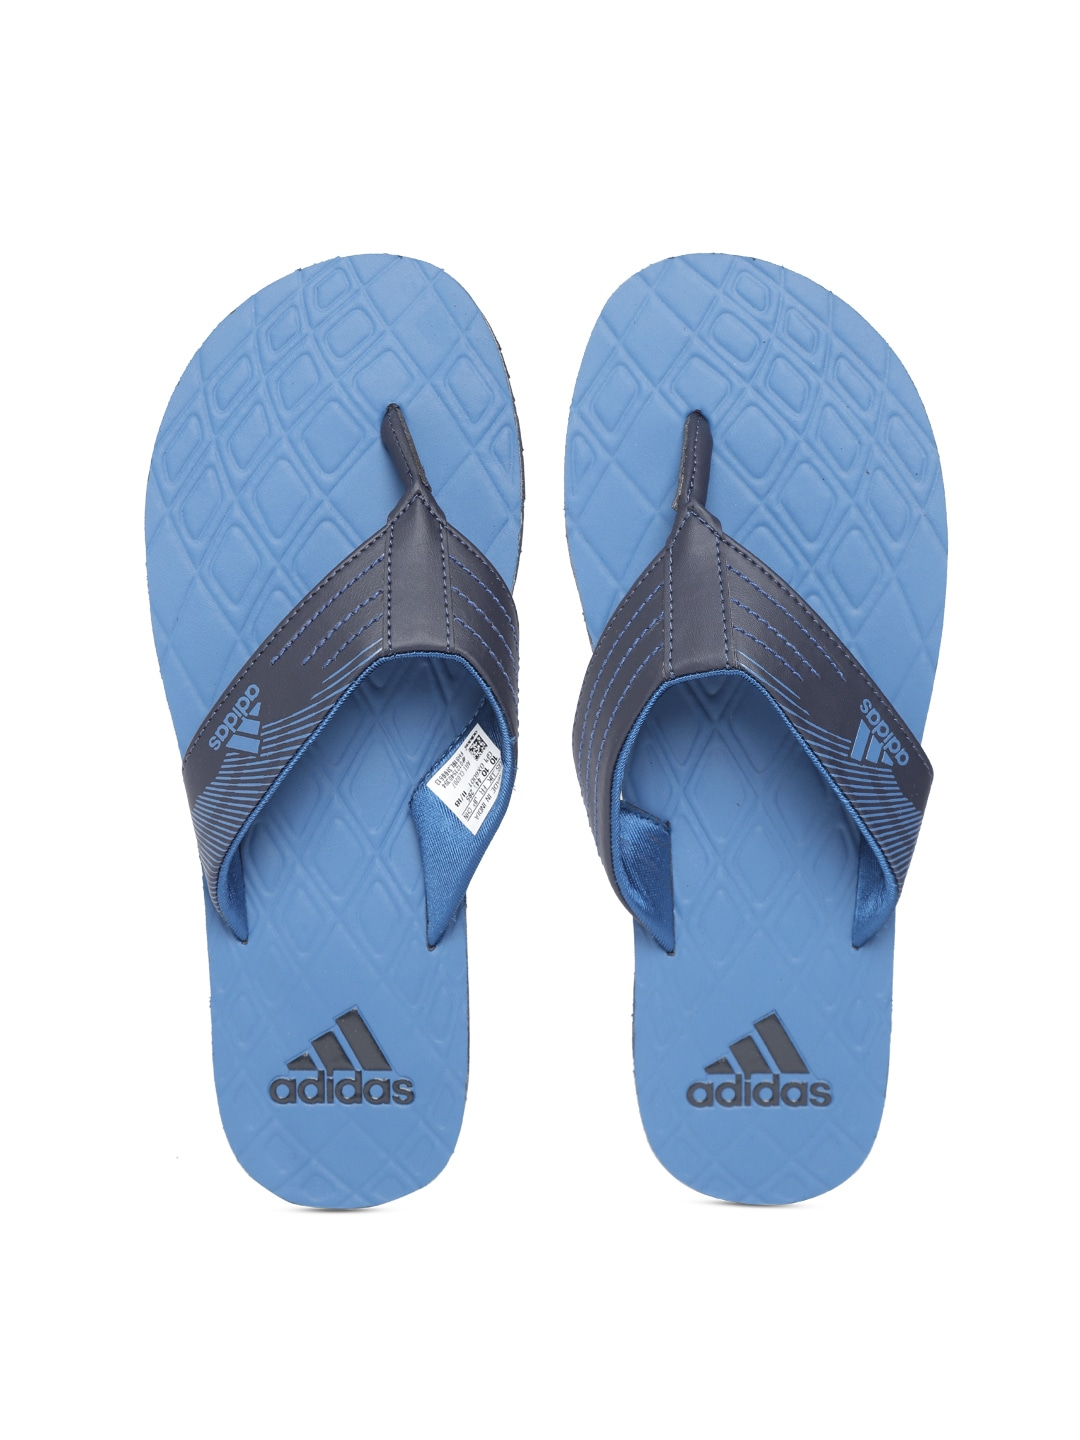 142c067bd Adidas Slippers - Buy Adidas Slipper   Flip Flops Online India